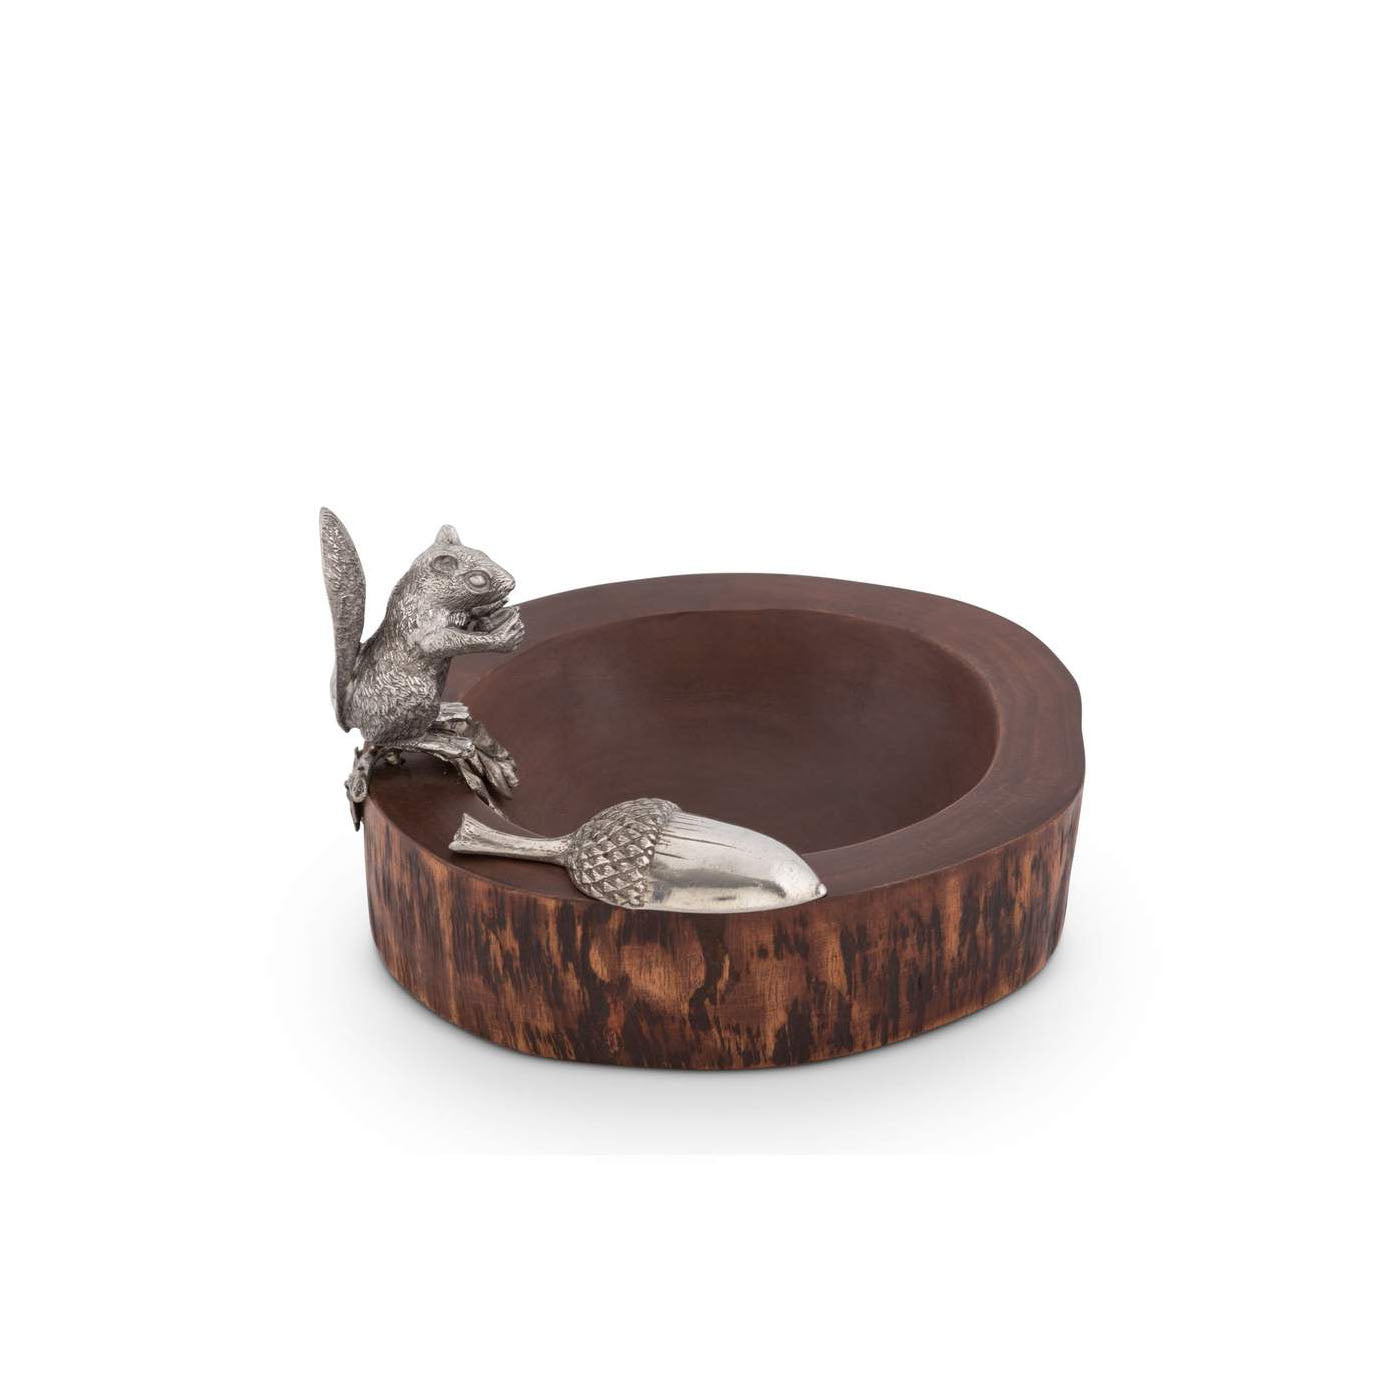 Standing Squirrel Nut Bowl & Scoop